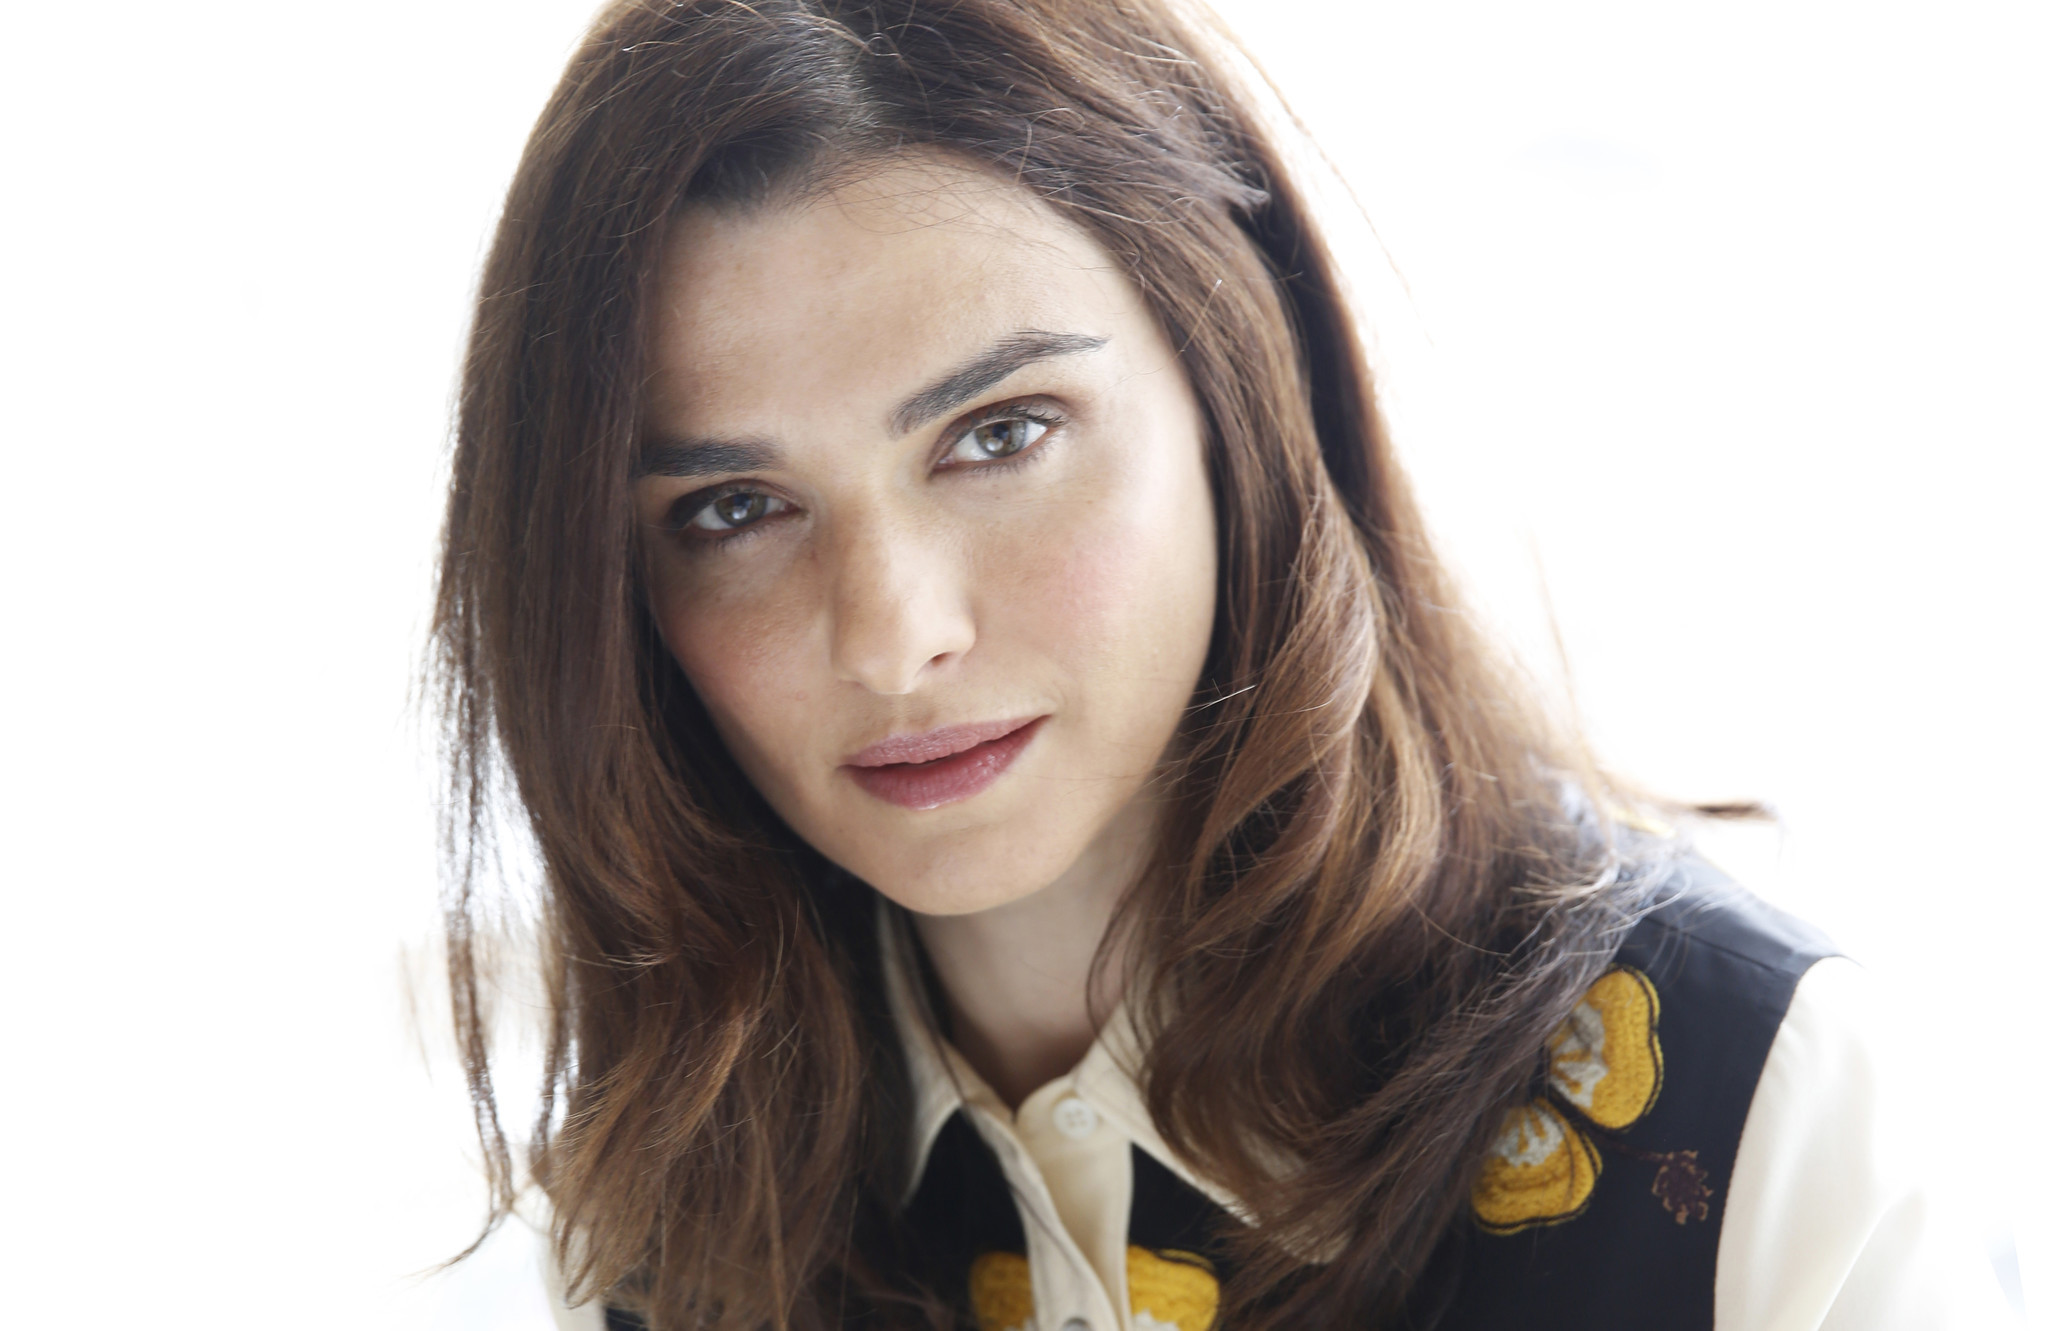 Transactions and transformations with Rachel Weisz in 'Complete Unknown,' 'Denial' and 'Plenty'